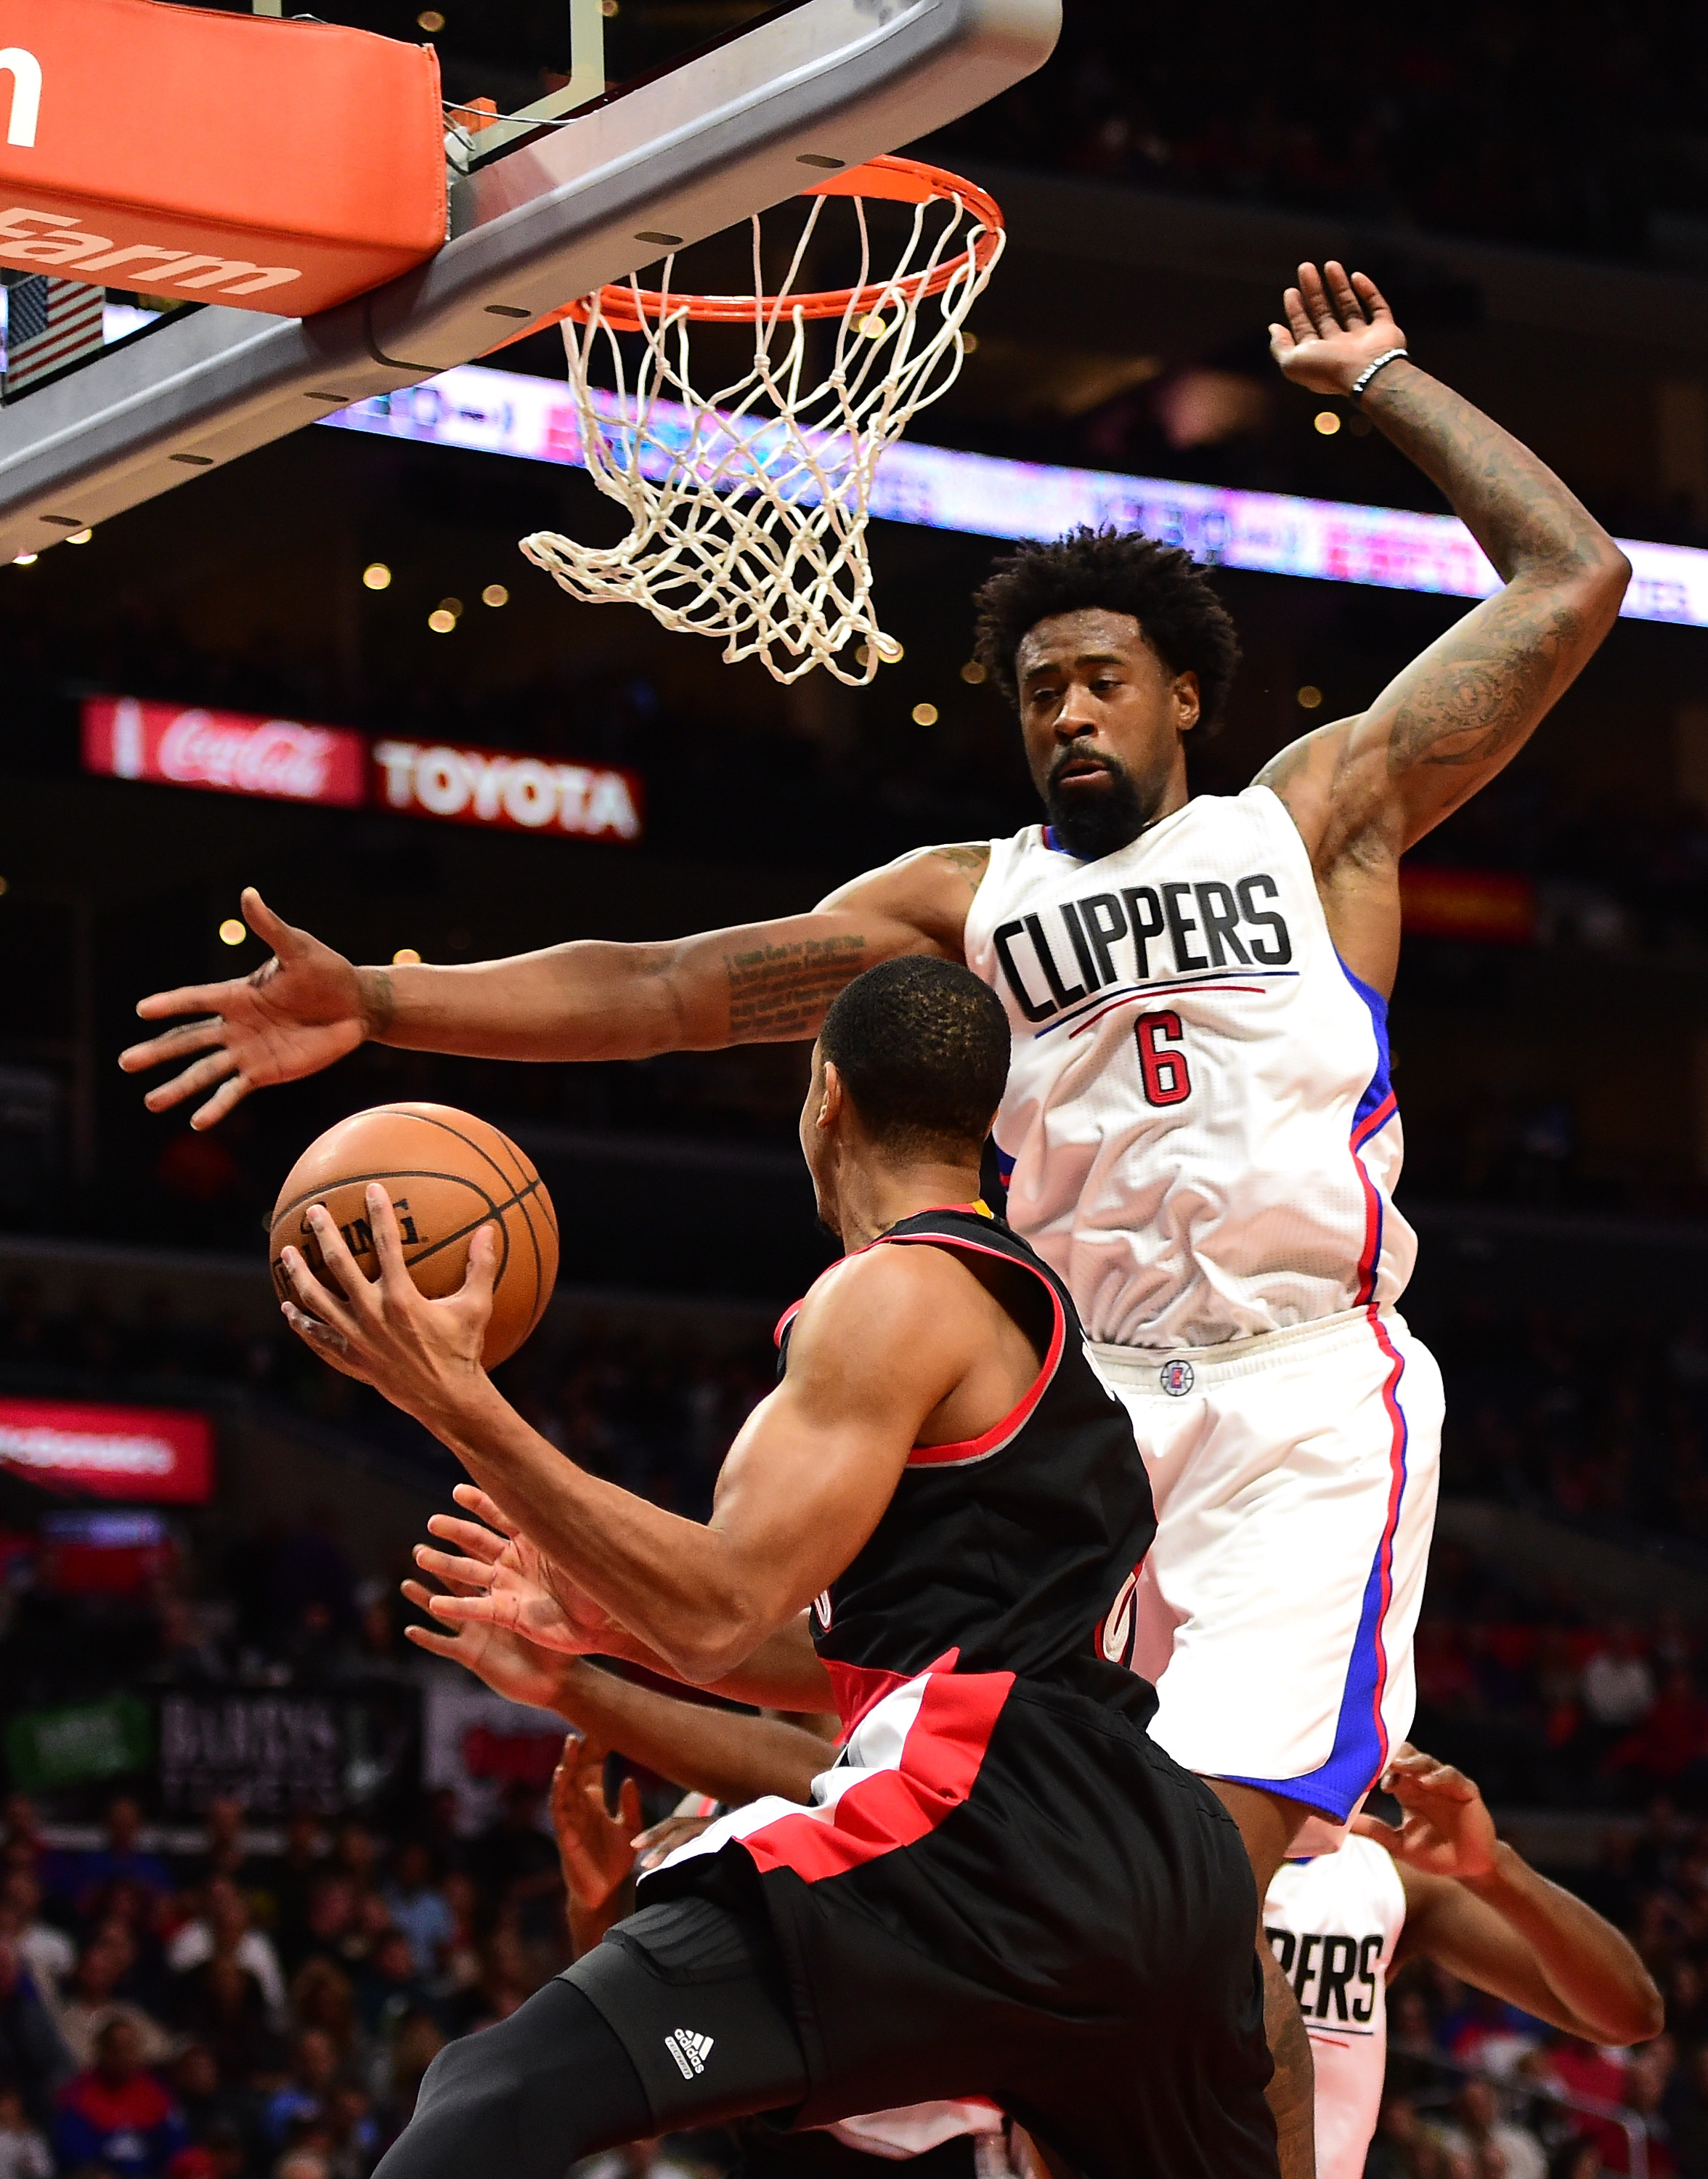 LOS ANGELES, CA - NOVEMBER 30:  DeAndre Jordan #6 of the Los Angeles Clippers attempts a block on C.J. McCollum #3 of the Portland Trail Blazers during the first half at Staples Center on November 30, 2015 in Los Angeles, California.  (Photo by Harry How/